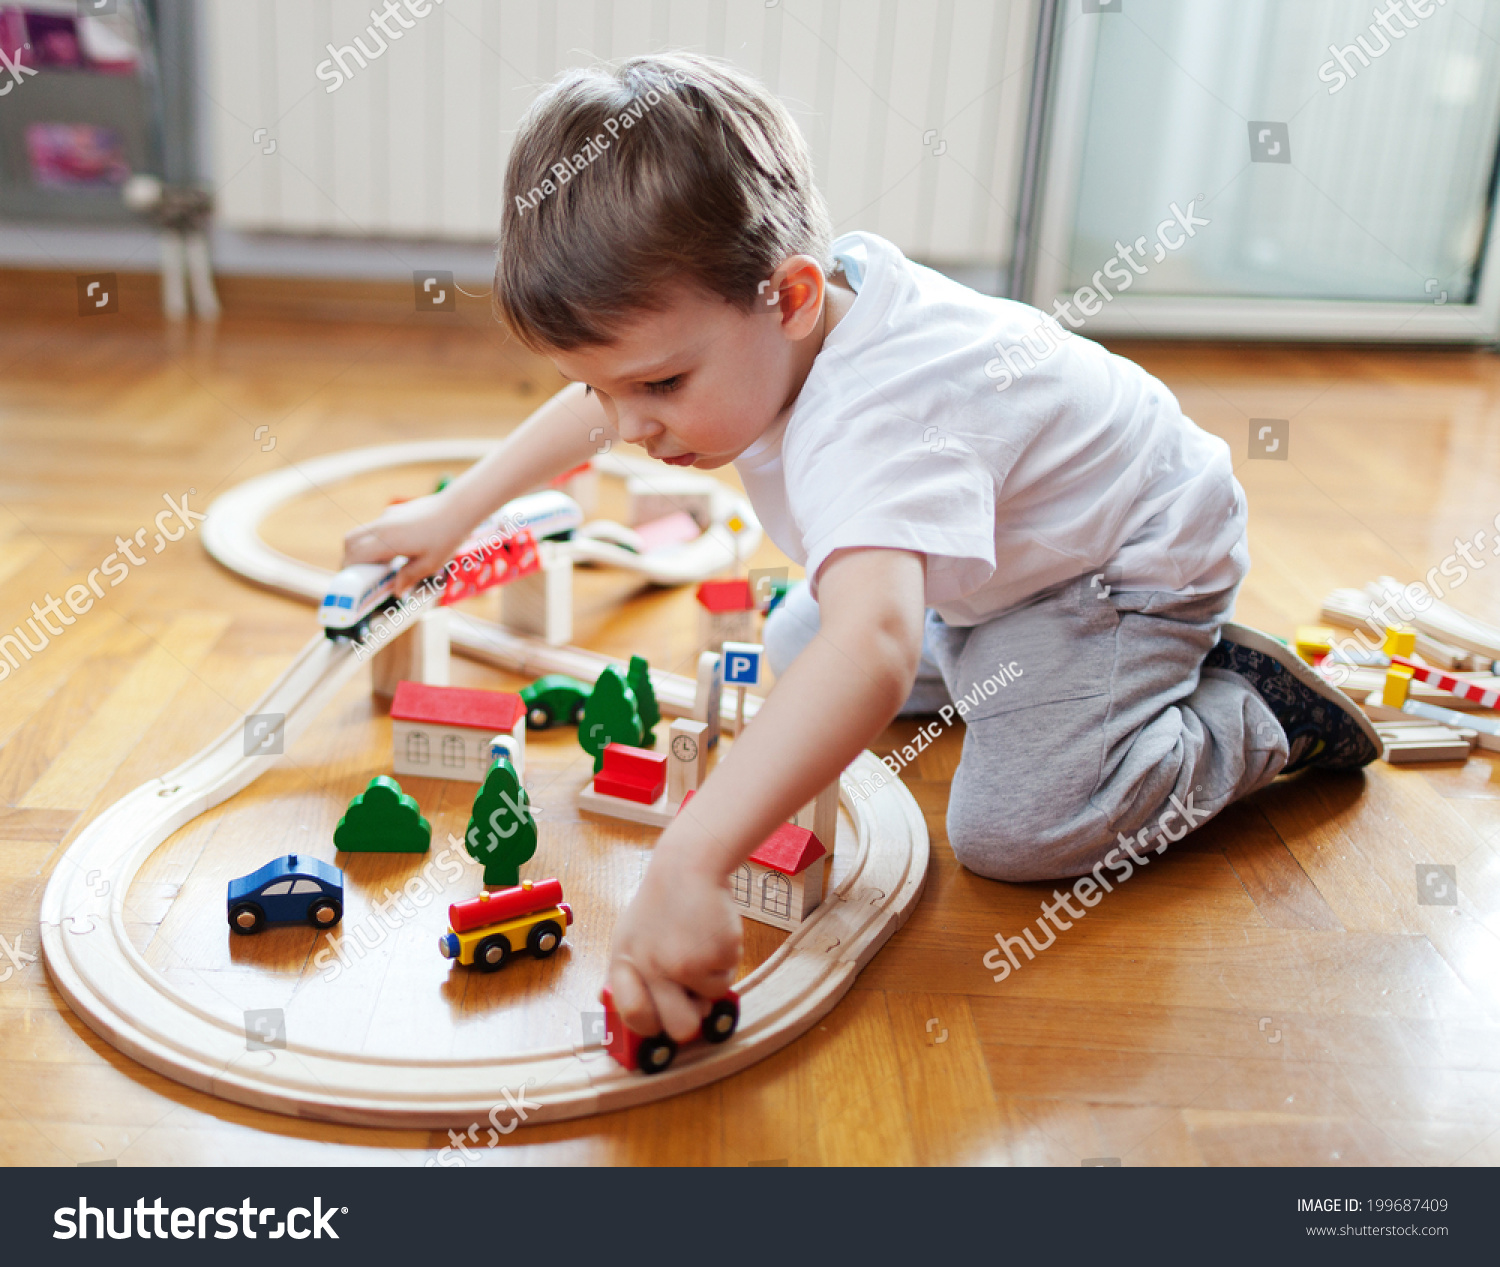 Learning Toys For Autistic Boys : Little boy playing with wooden train set stock photo